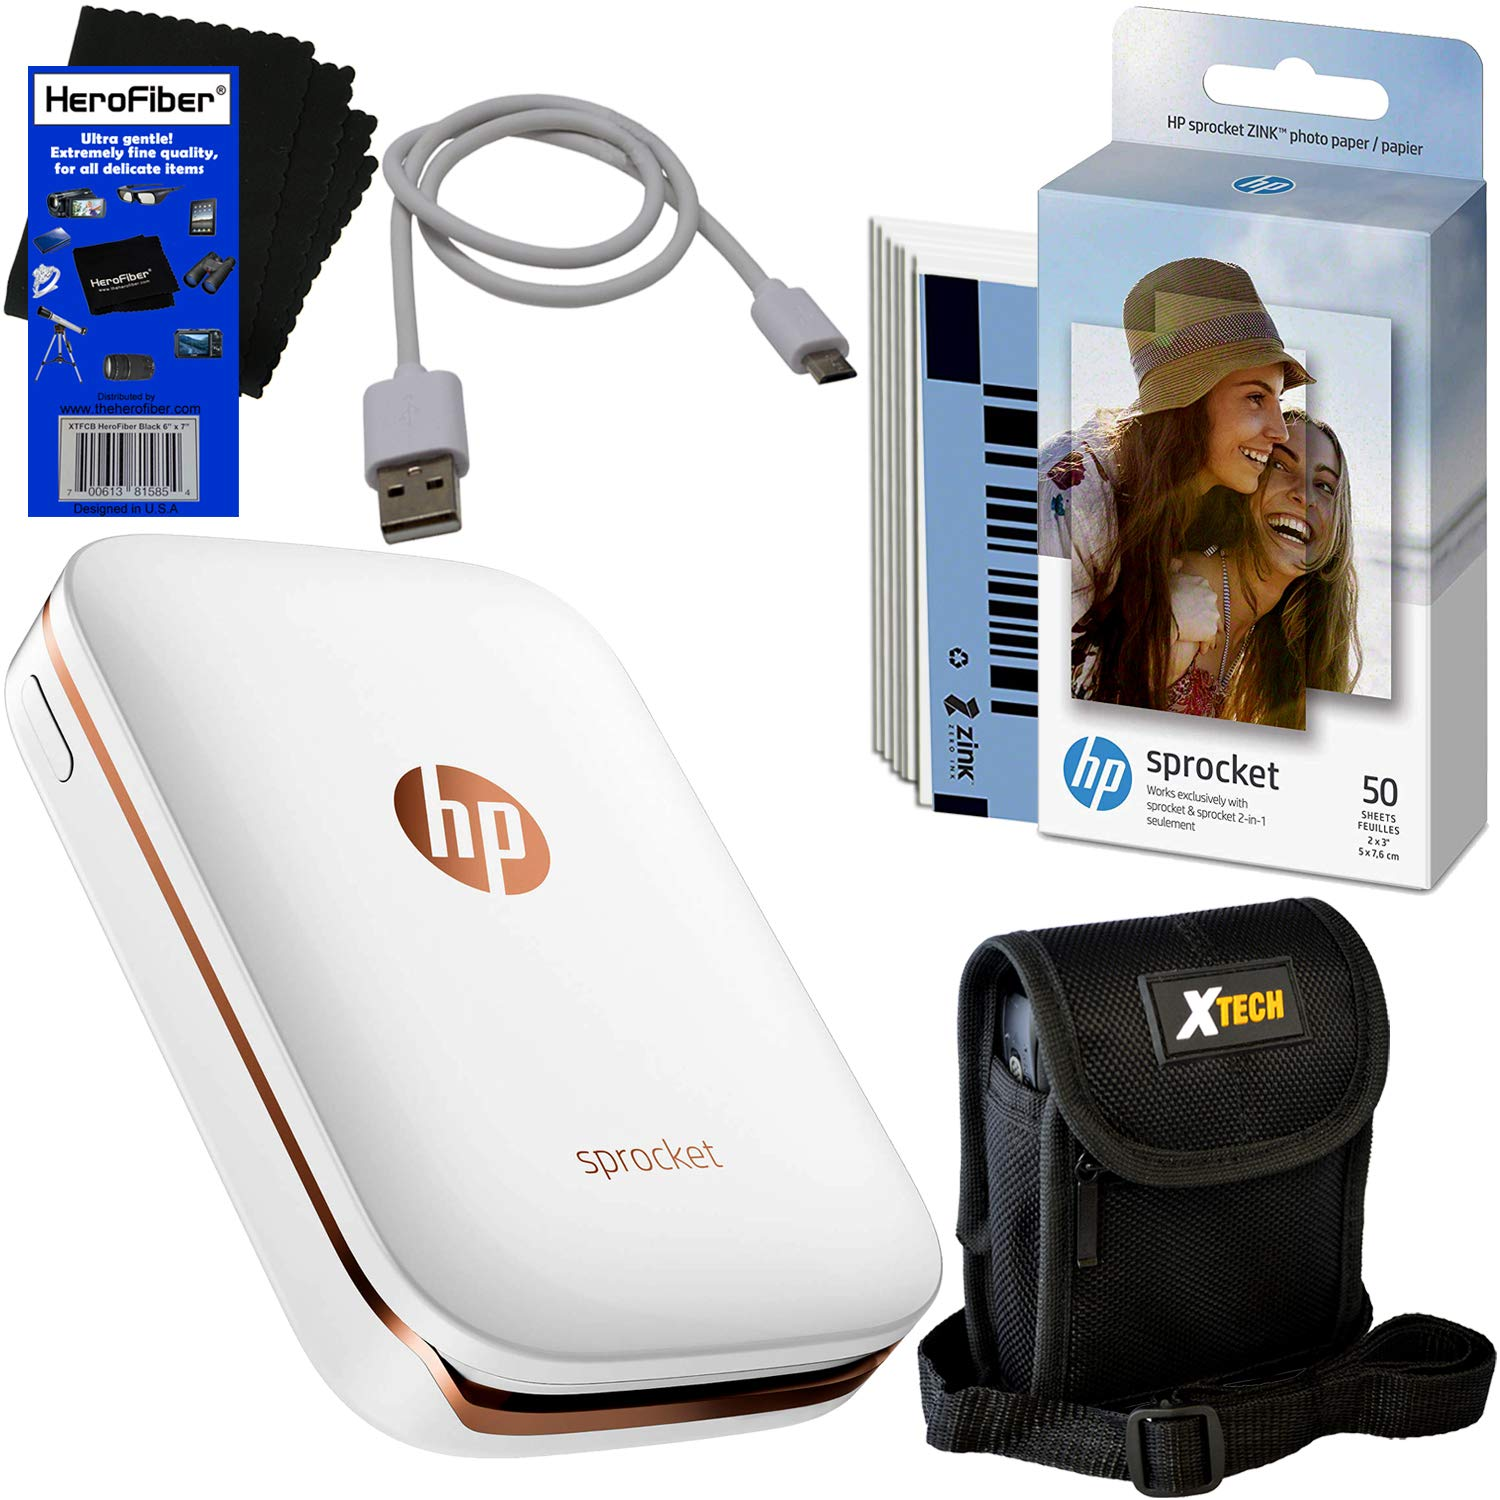 HP Sprocket Photo Printer, Print Social Media Photos on 2x3 Sticky-Backed Paper (White) + Photo Paper (60 Sheets) + Protective Case + USB Cable + HeroFiber Gentle Cleaning Cloth by HeroFiber